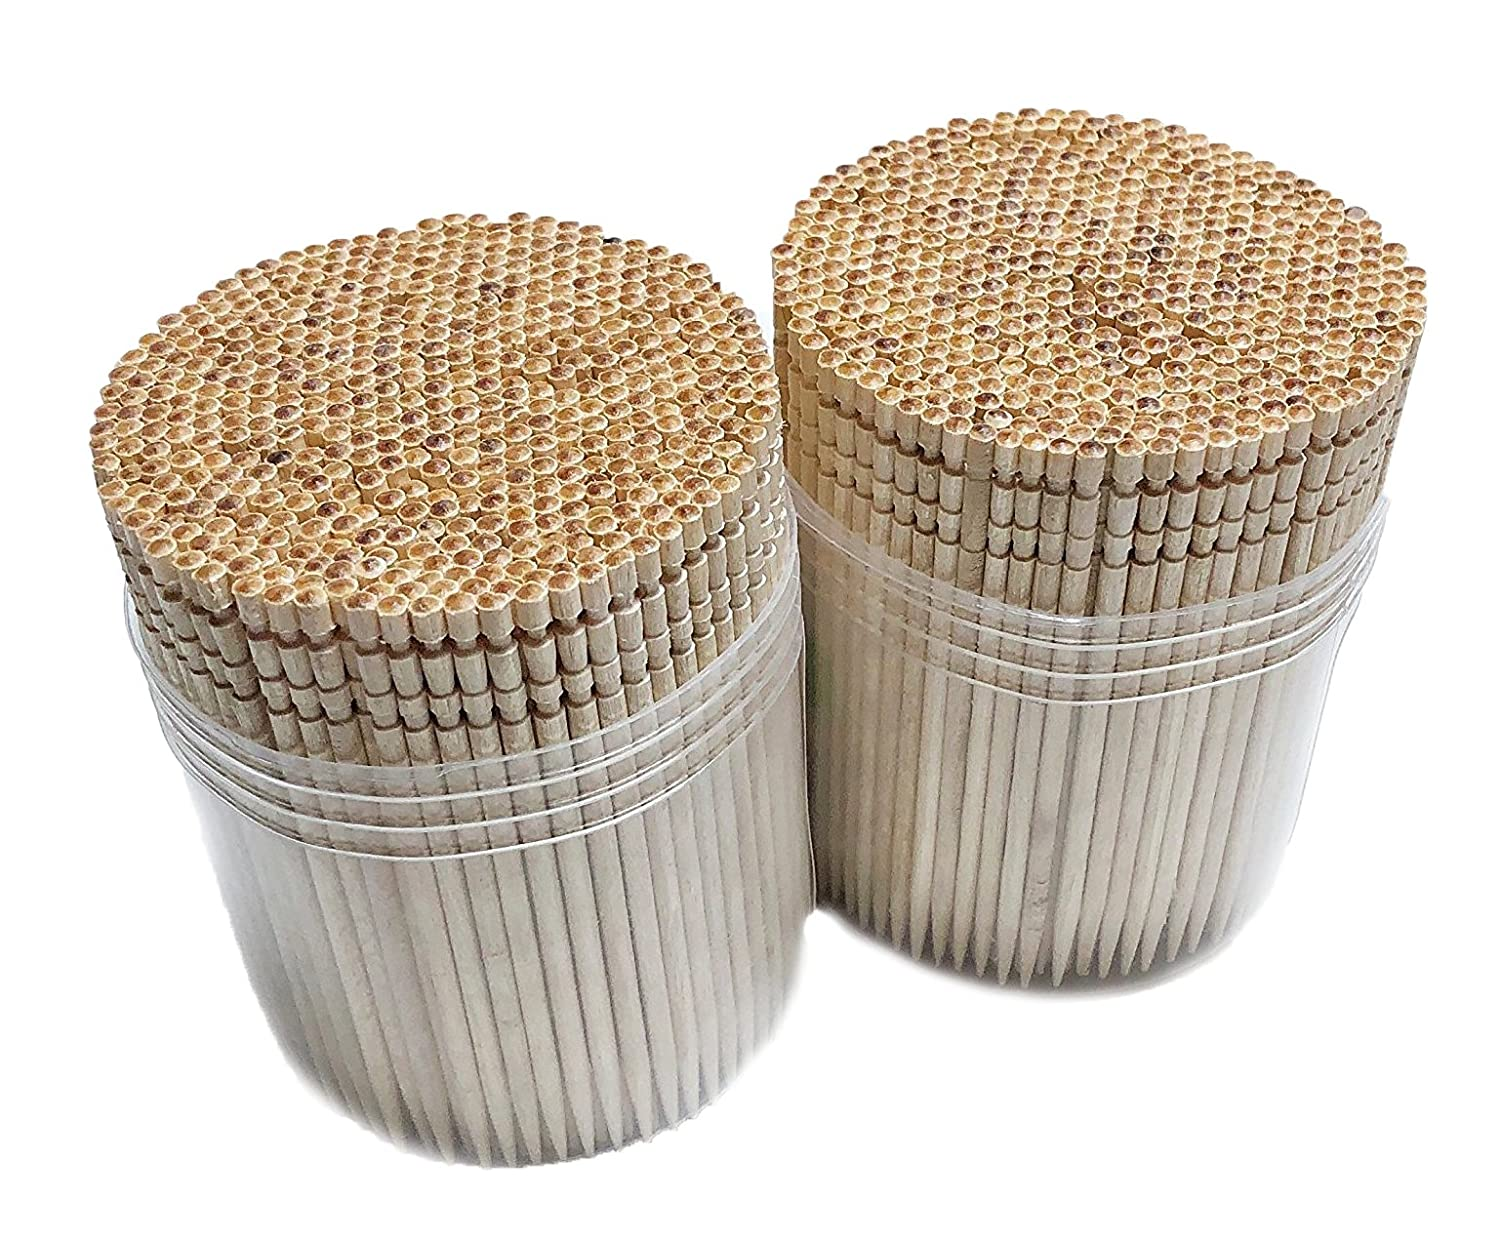 Makerstep Ornate Wooden Toothpicks - 1000 Pieces Cocktail + Sturdy Safe Large Round Storage Box + 2 Packs of 500 Party Appetizer Olive Barbecue Fruit Teeth Cleaning Art Crafts 20012